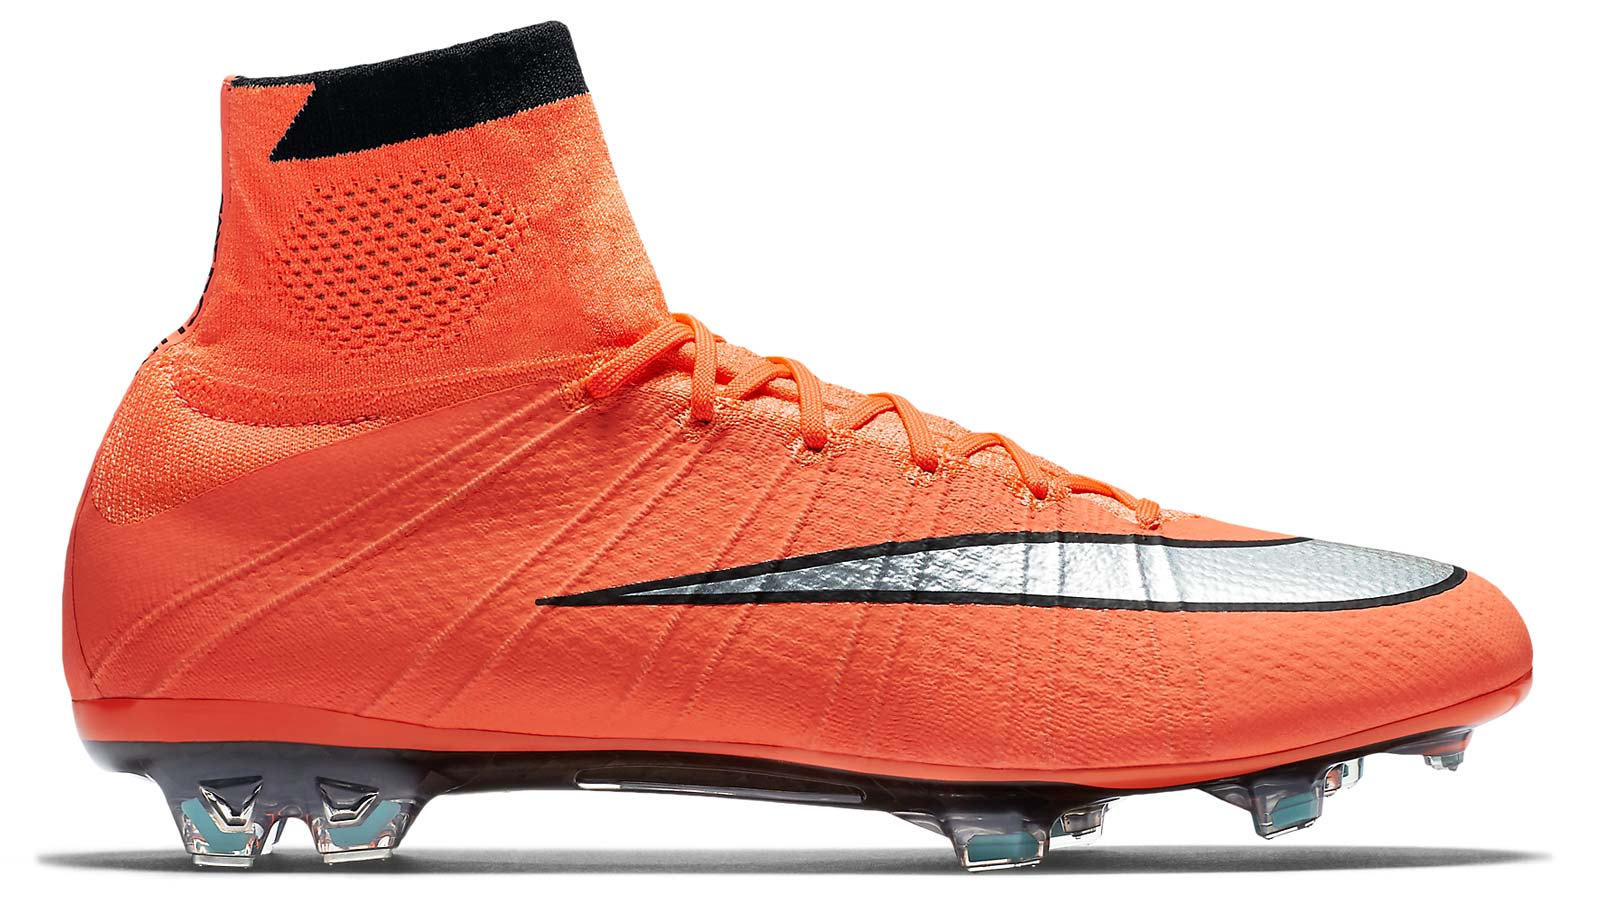 buy popular af810 2ae3f ... Nike Metal Flash Pack Released - First Nike 2016 Football Boots  Collection nike mercurial superfly ...